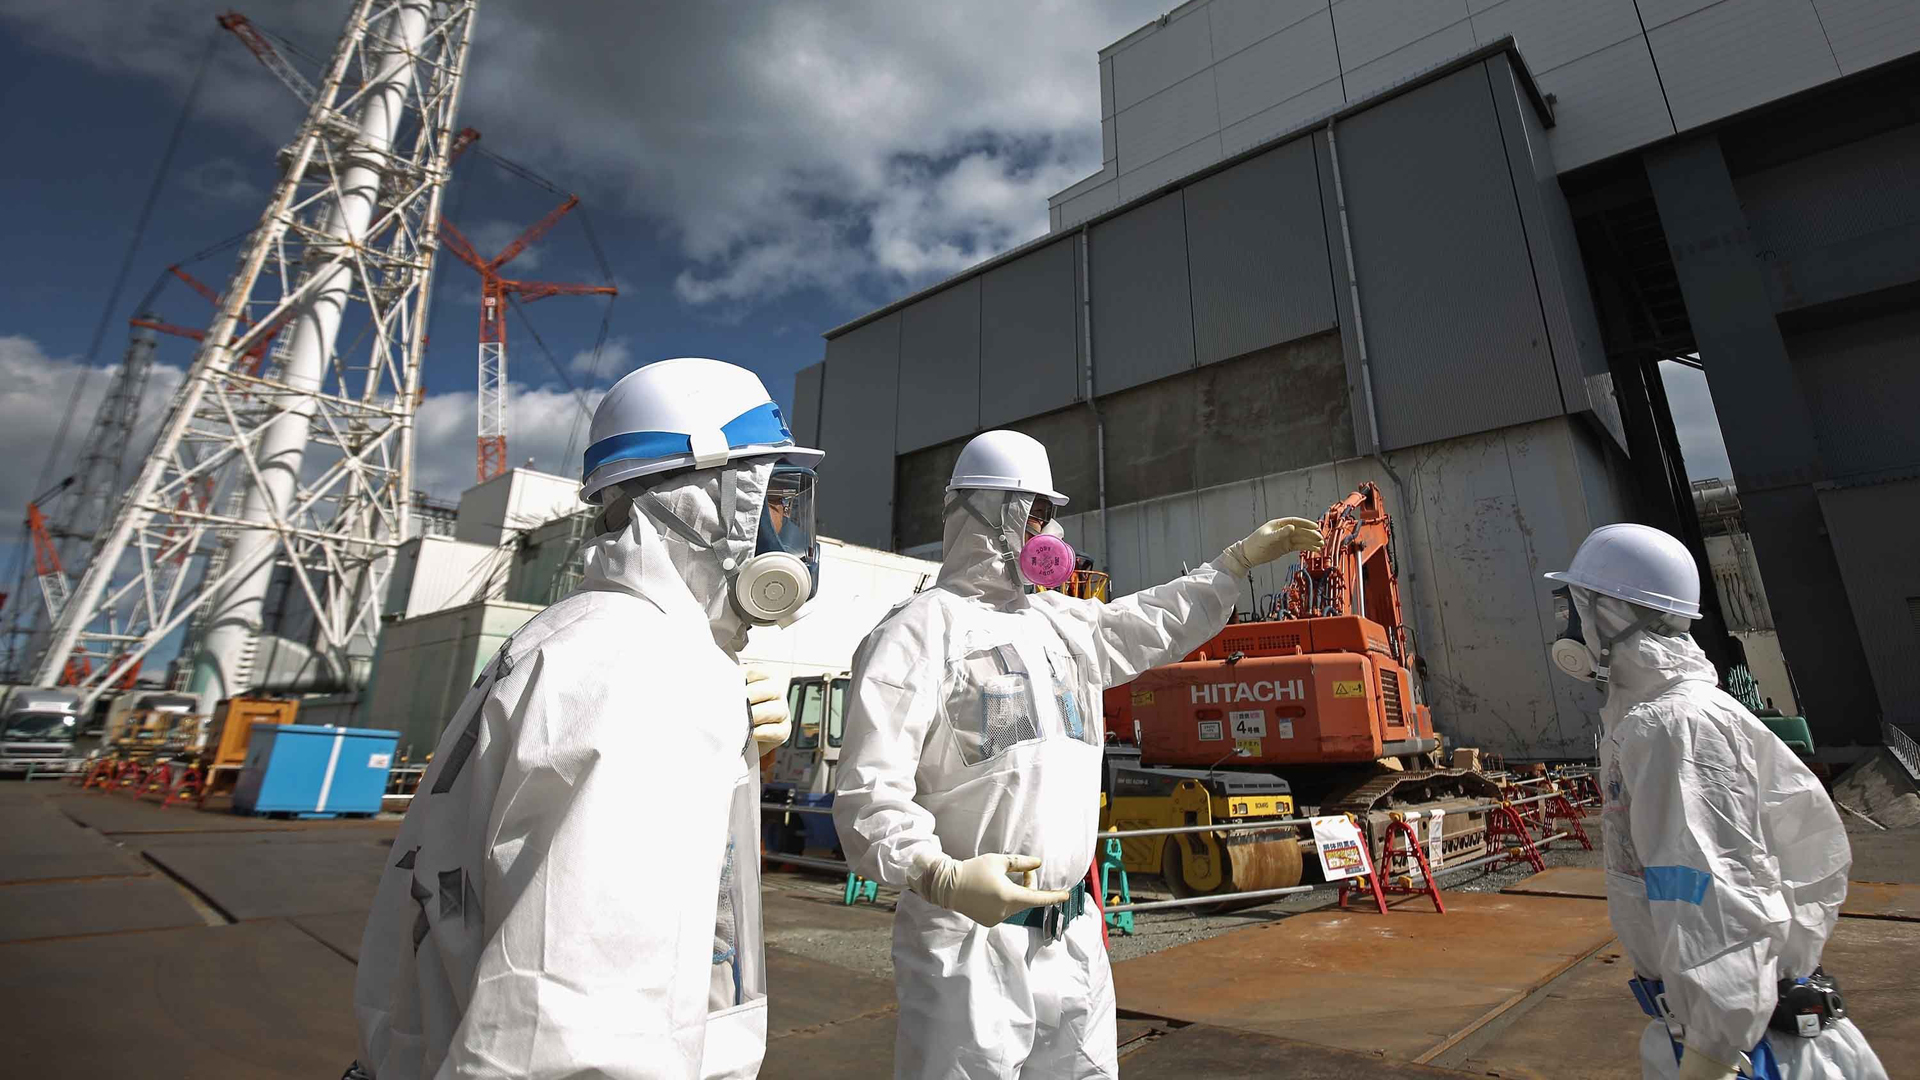 Decontamination efforts around the plant -- pictured here in 2016 -- are expected to take another two years (Credit: Christopher Furlong/Getty Images)